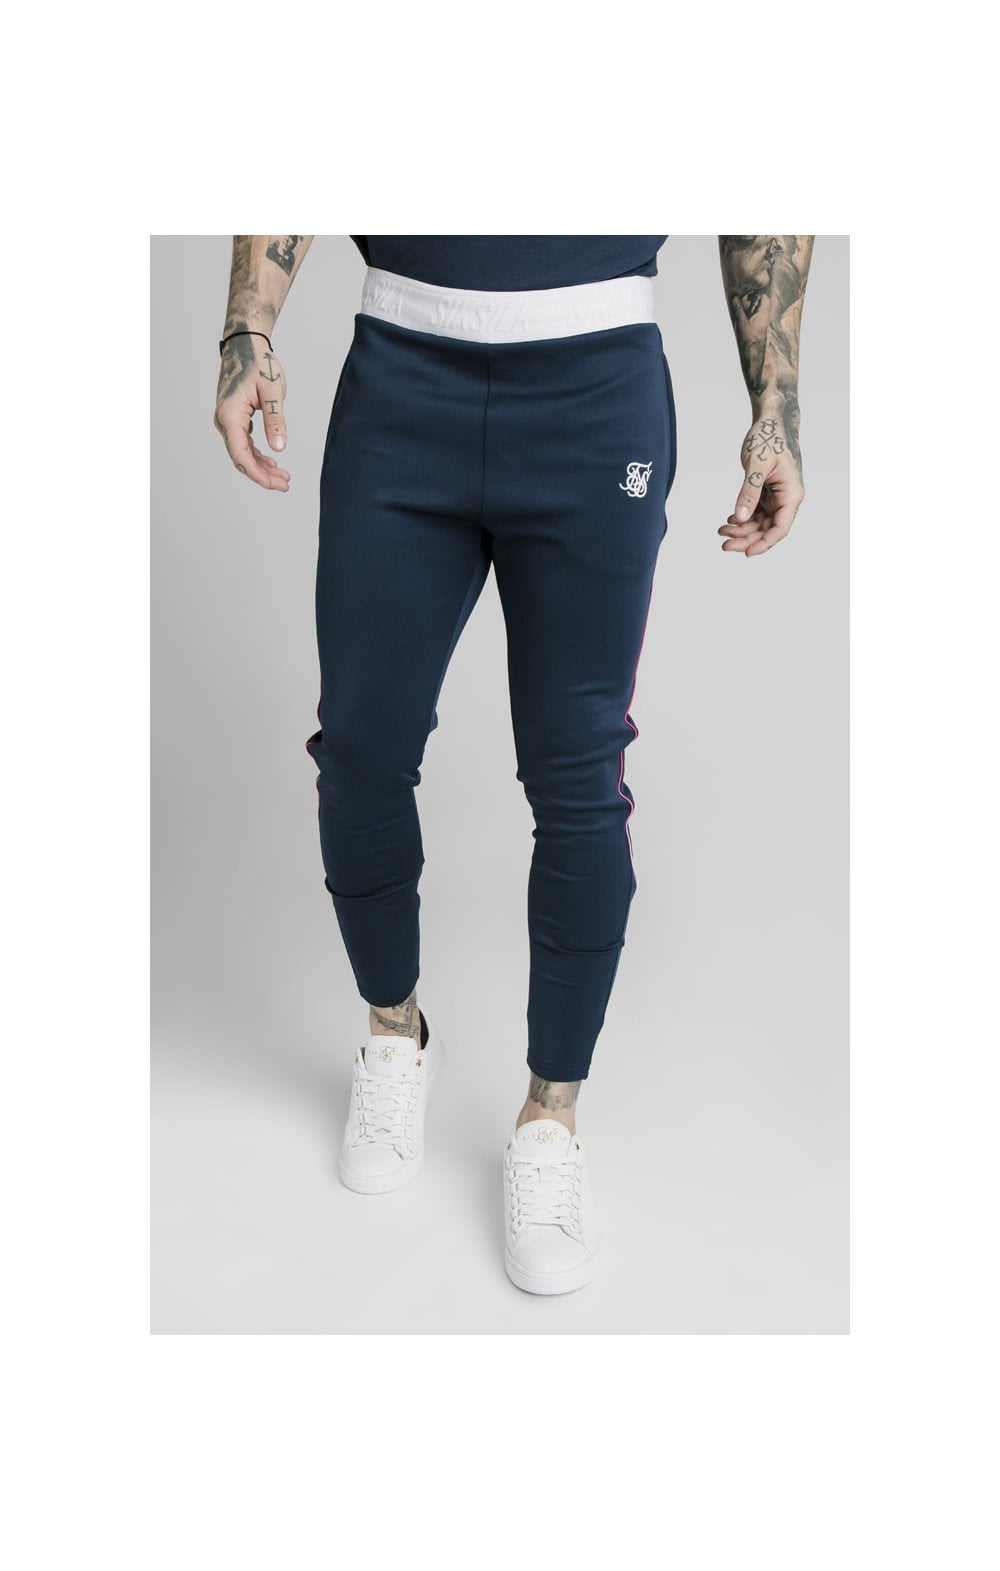 Load image into Gallery viewer, SikSilk Athlete Prestige Fade Track Pants - Navy